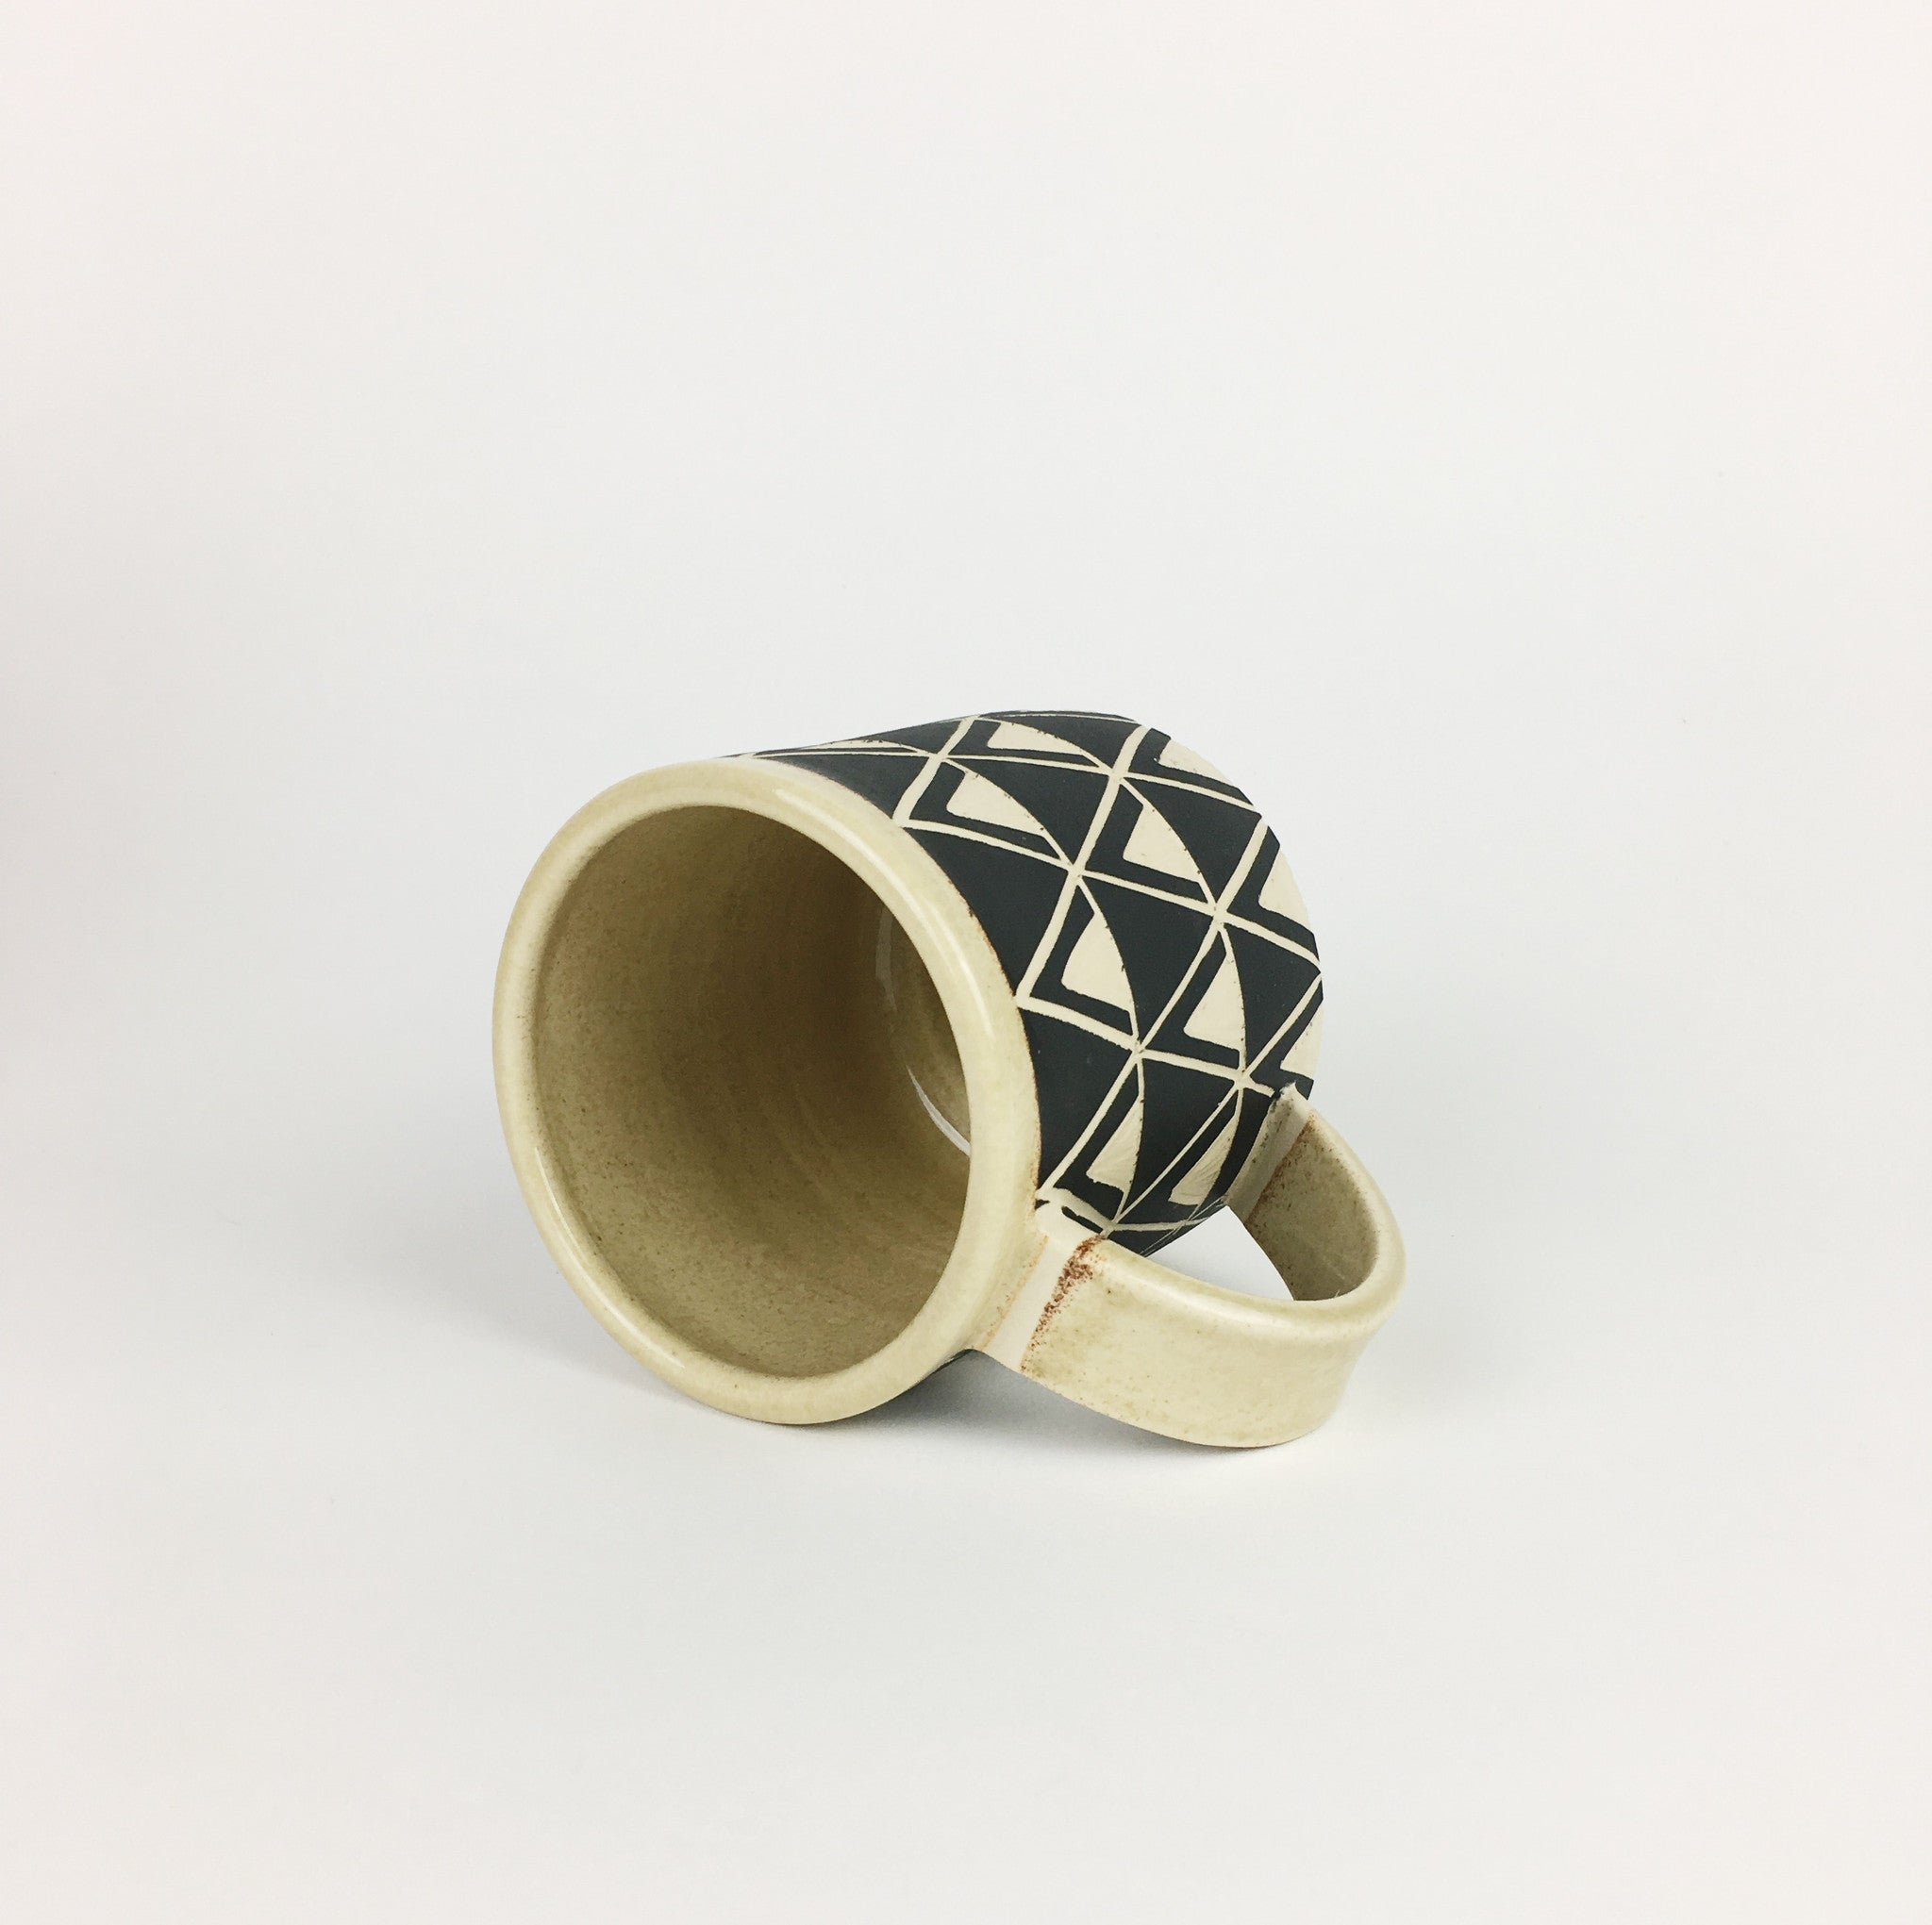 PATTERNED MUG NO. 5